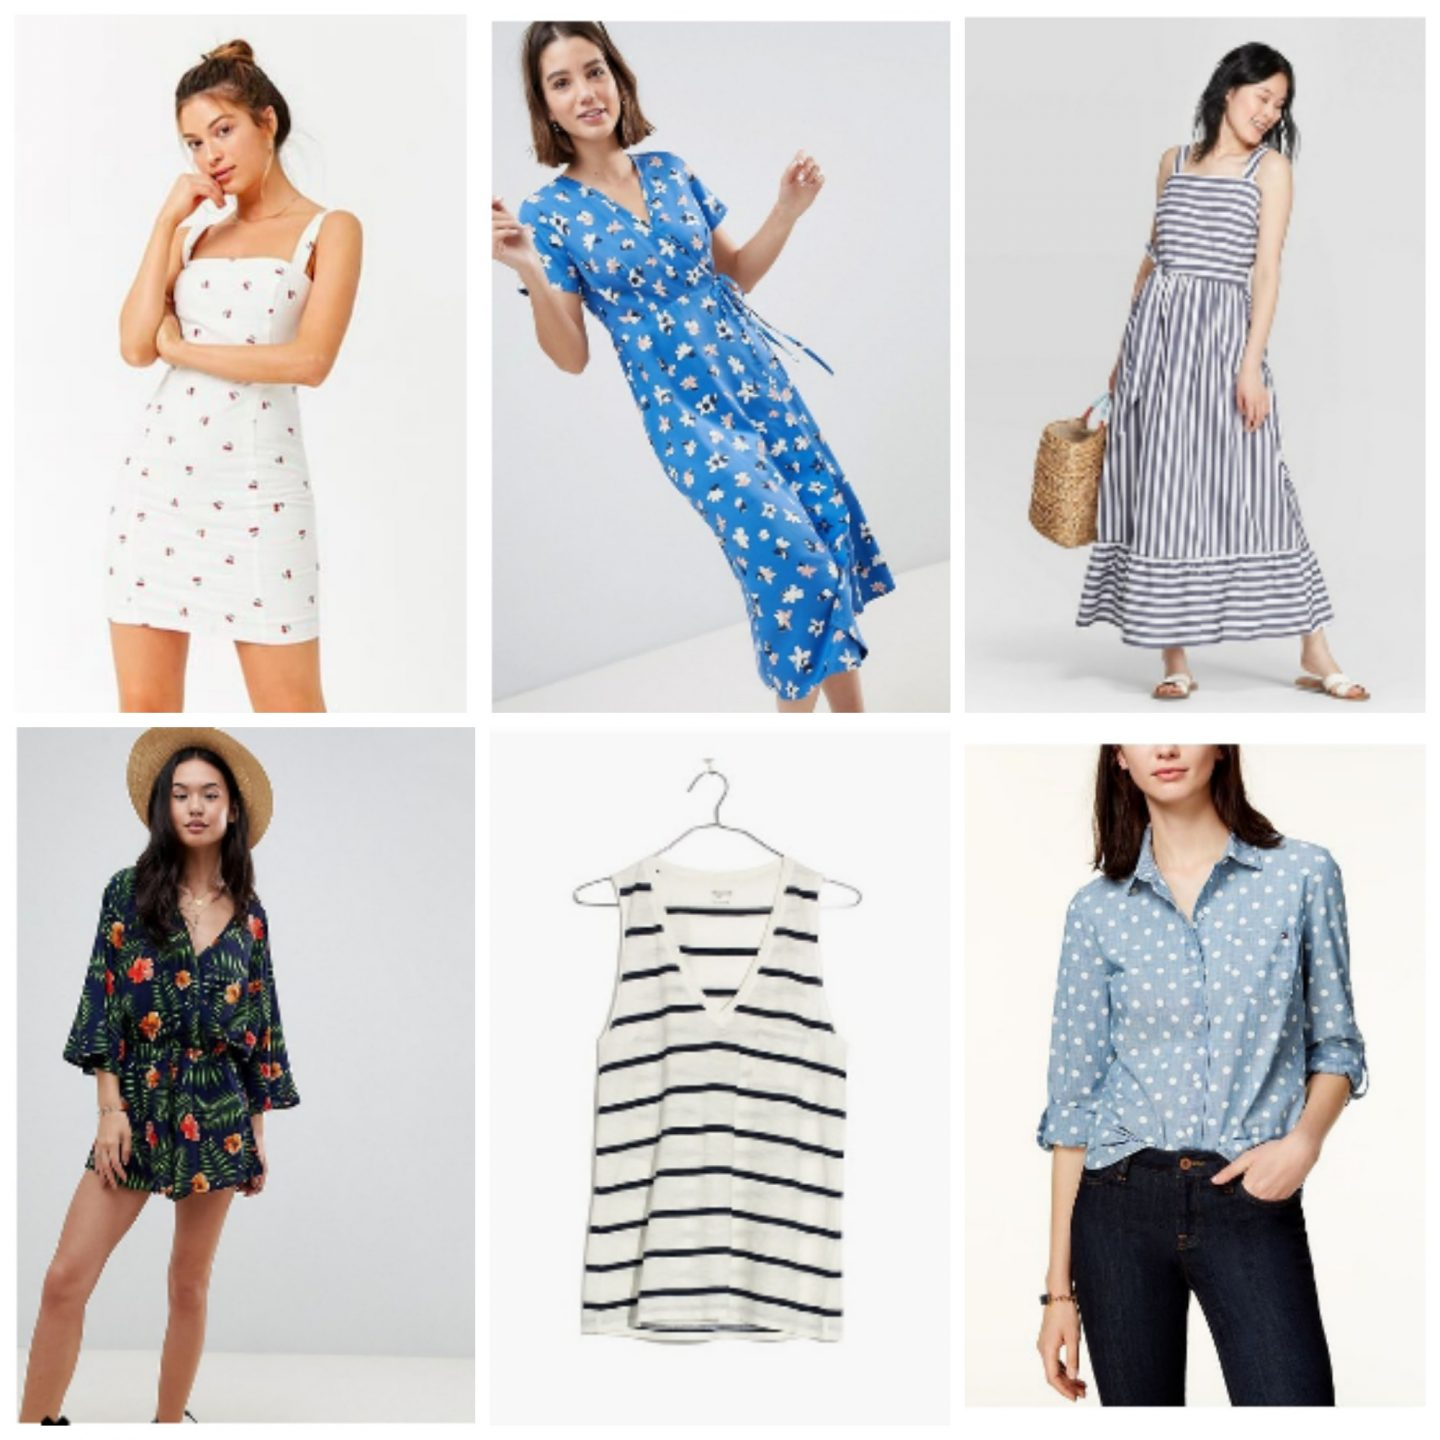 Tuesday's Cravings: Summer Prints